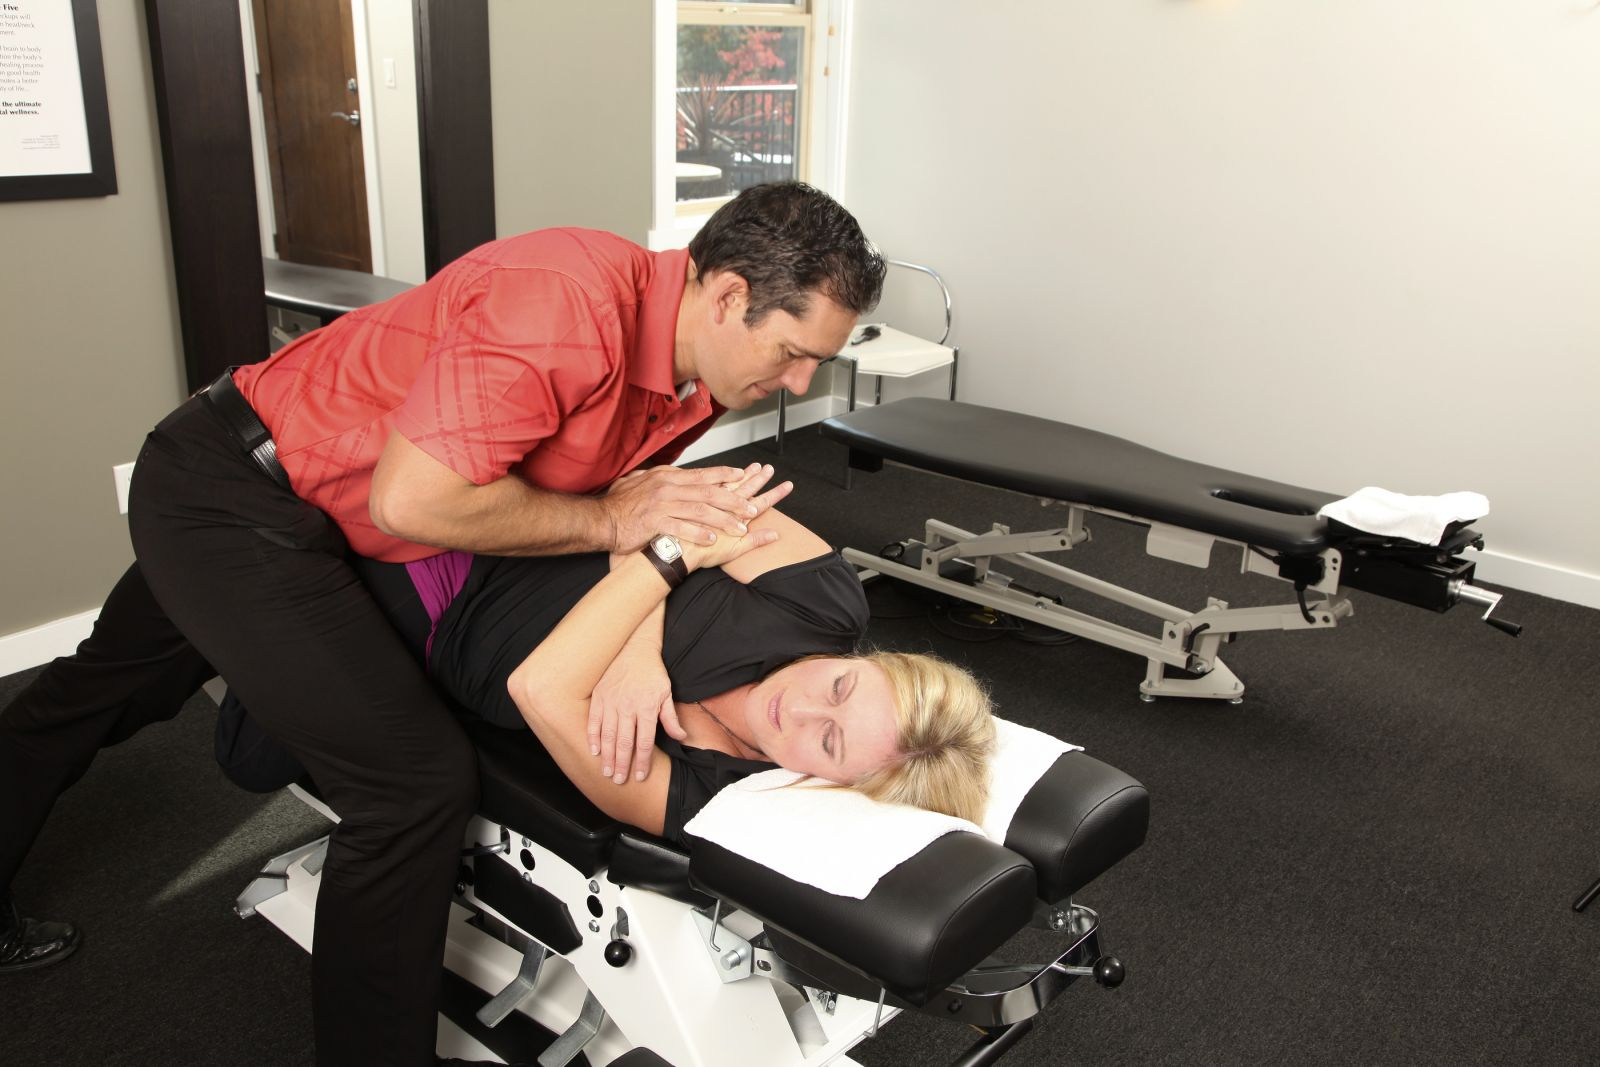 chiropractic care for pain relief